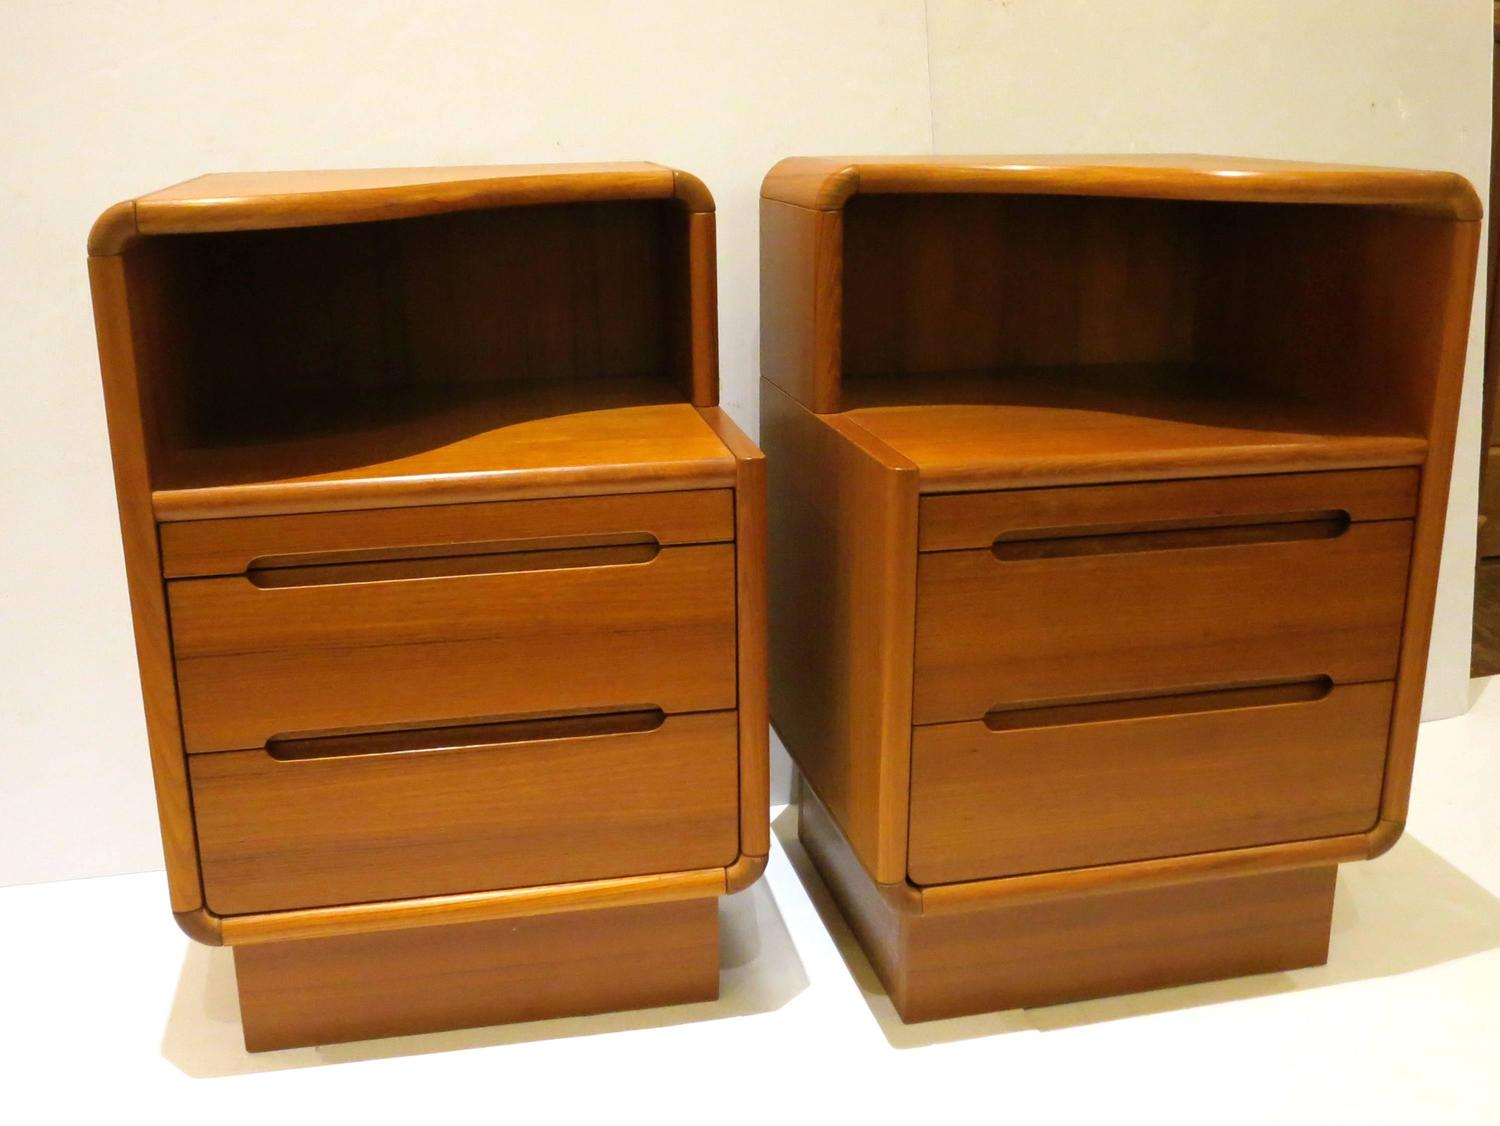 Pair of Danish Modern Tall Teak Nightstands with Writing Desk For Sale at 1stdibs